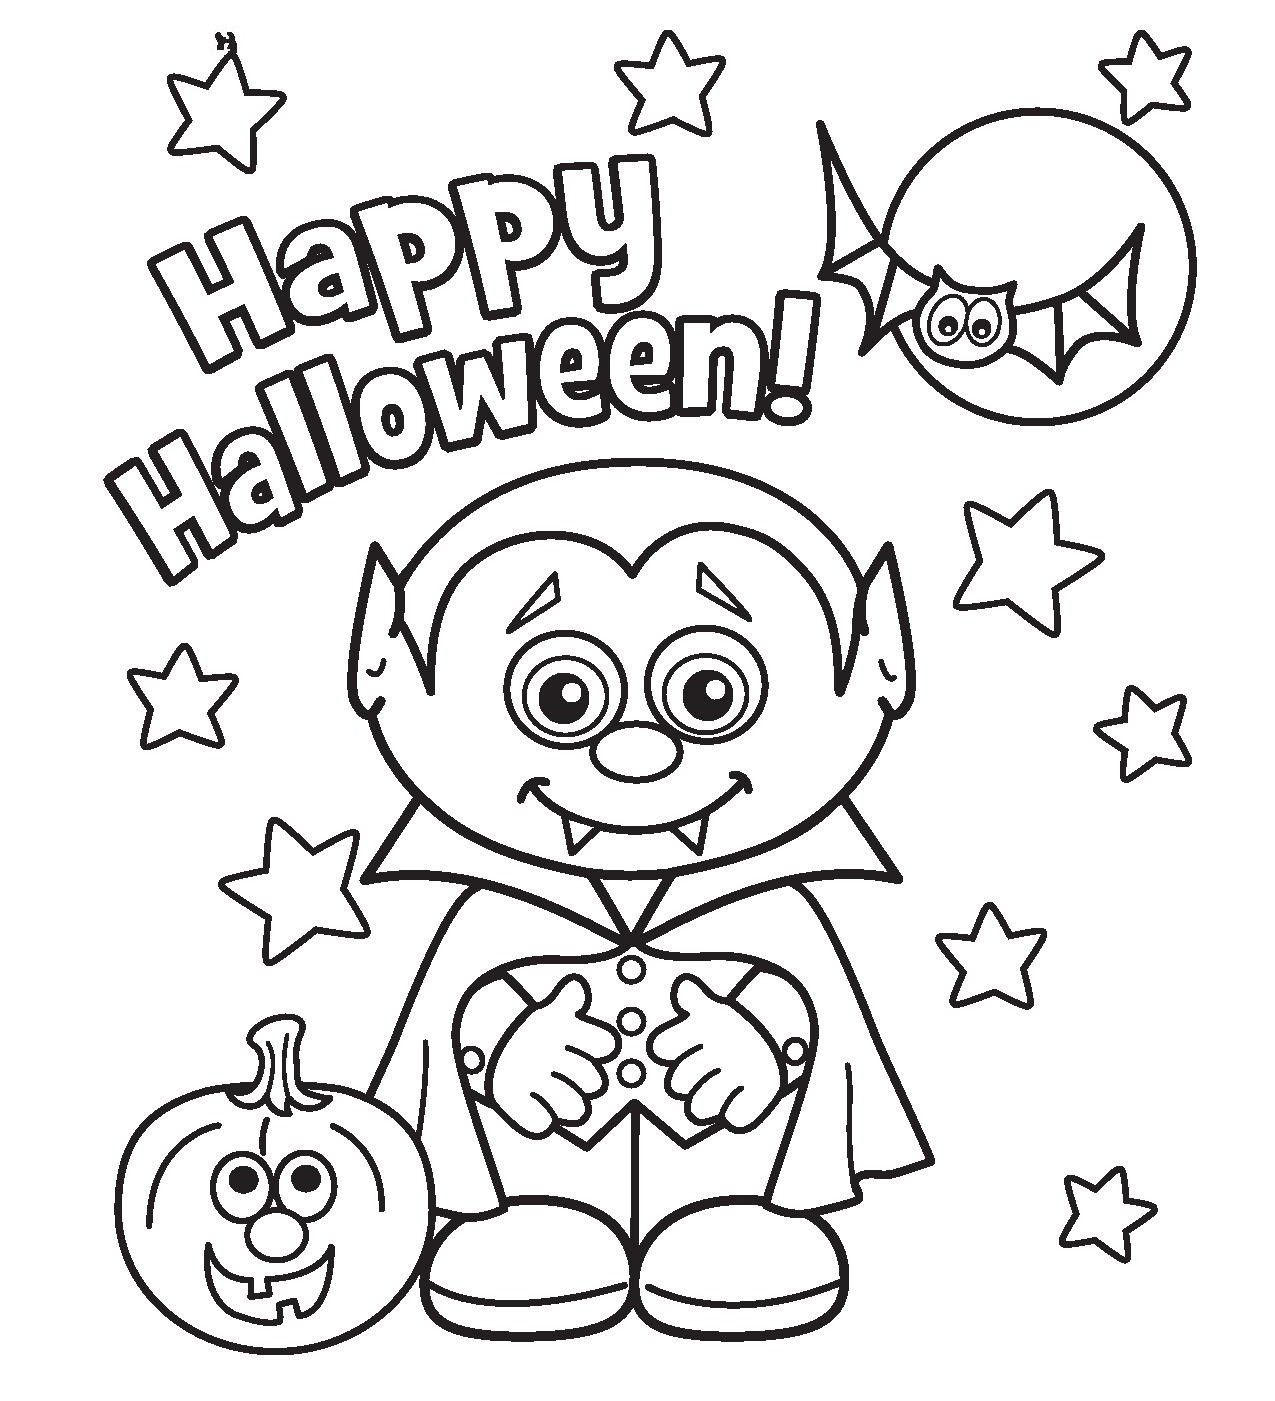 Cute halloween coloring pages for kids just colorings for Cute halloween coloring pages free